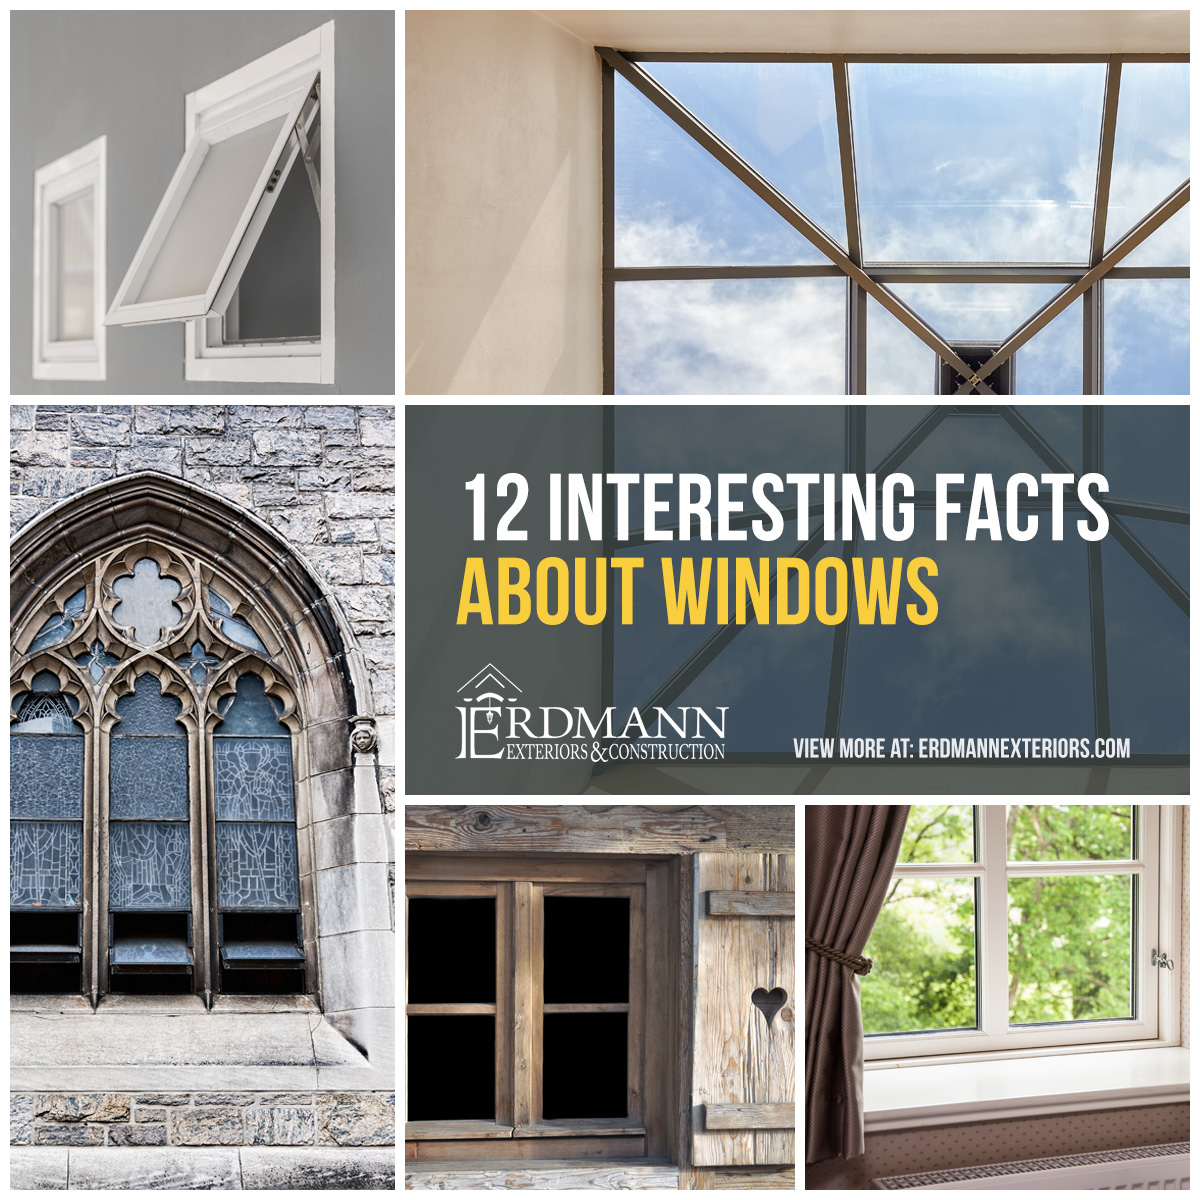 From aesthetics to efficiency windows are one